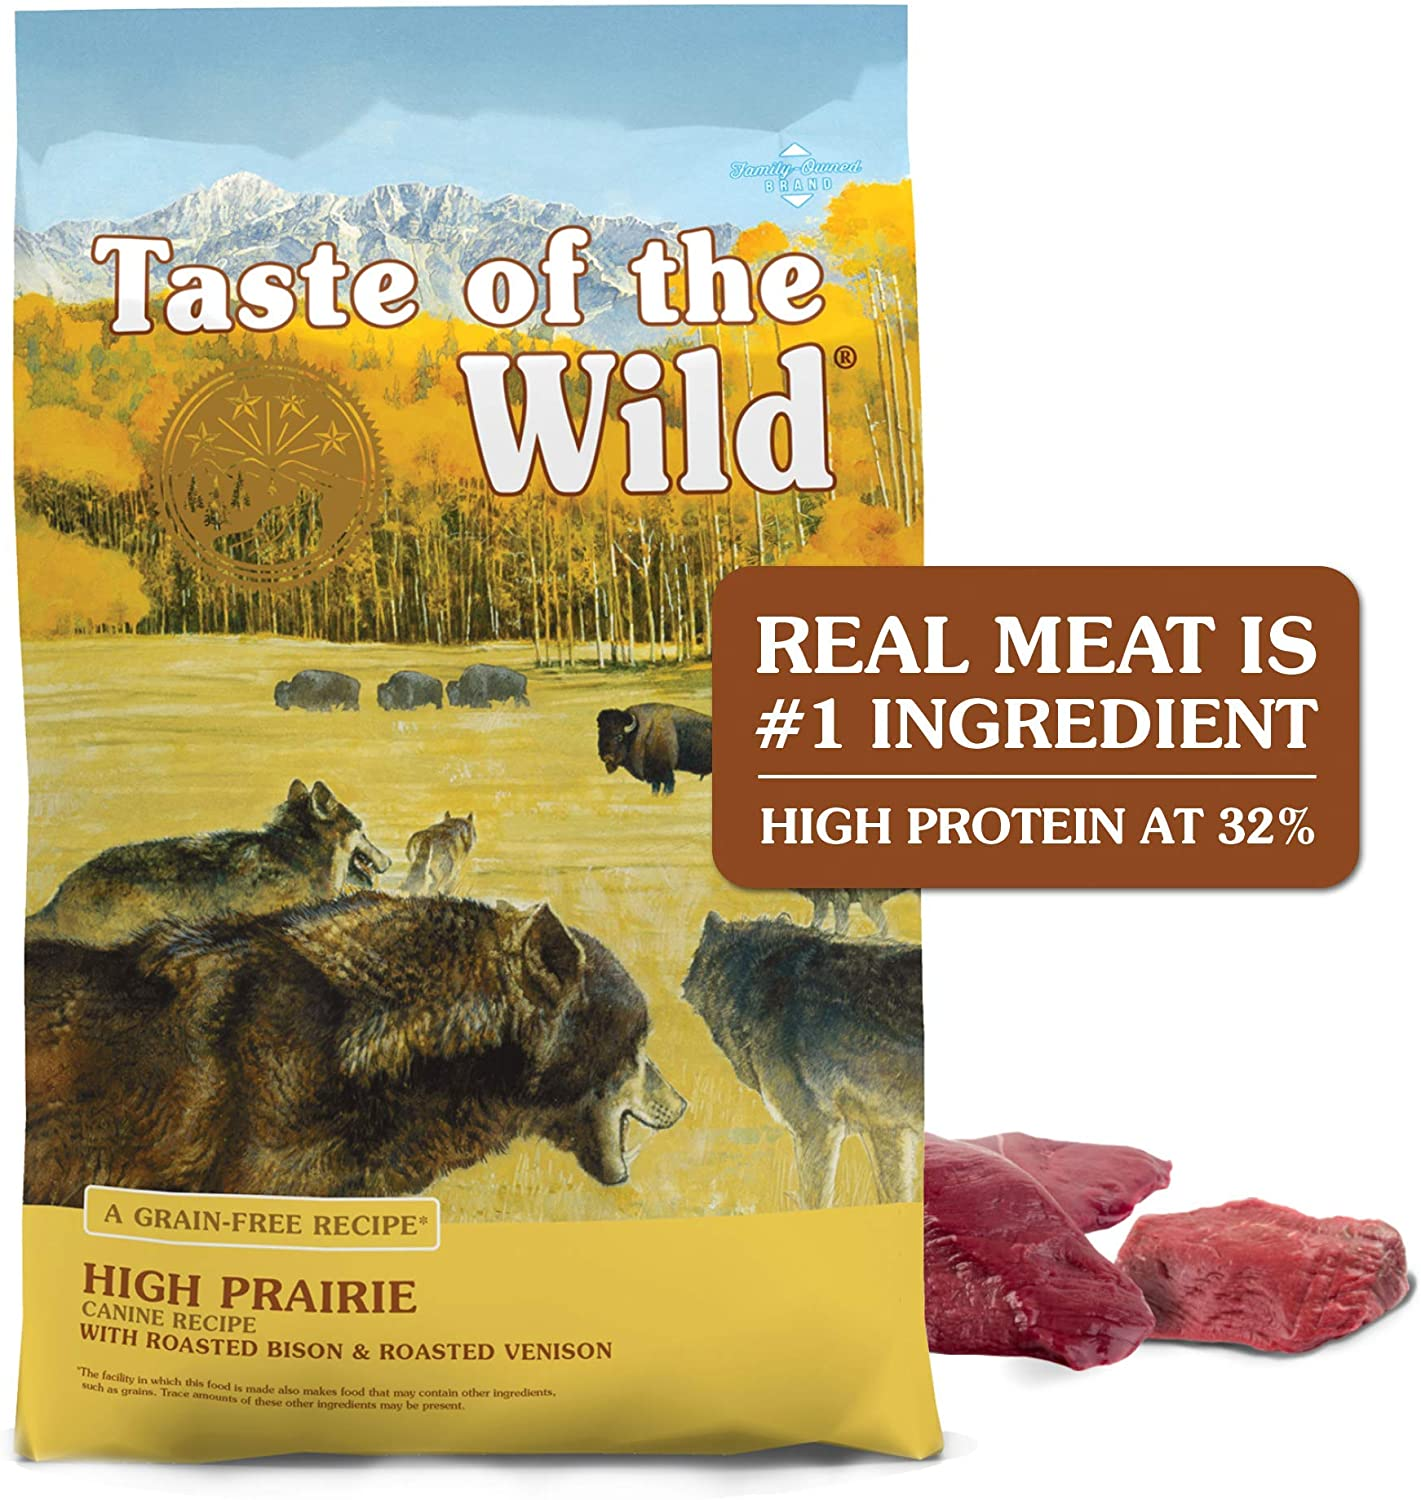 7. Taste of the Wild Dry Dog Food